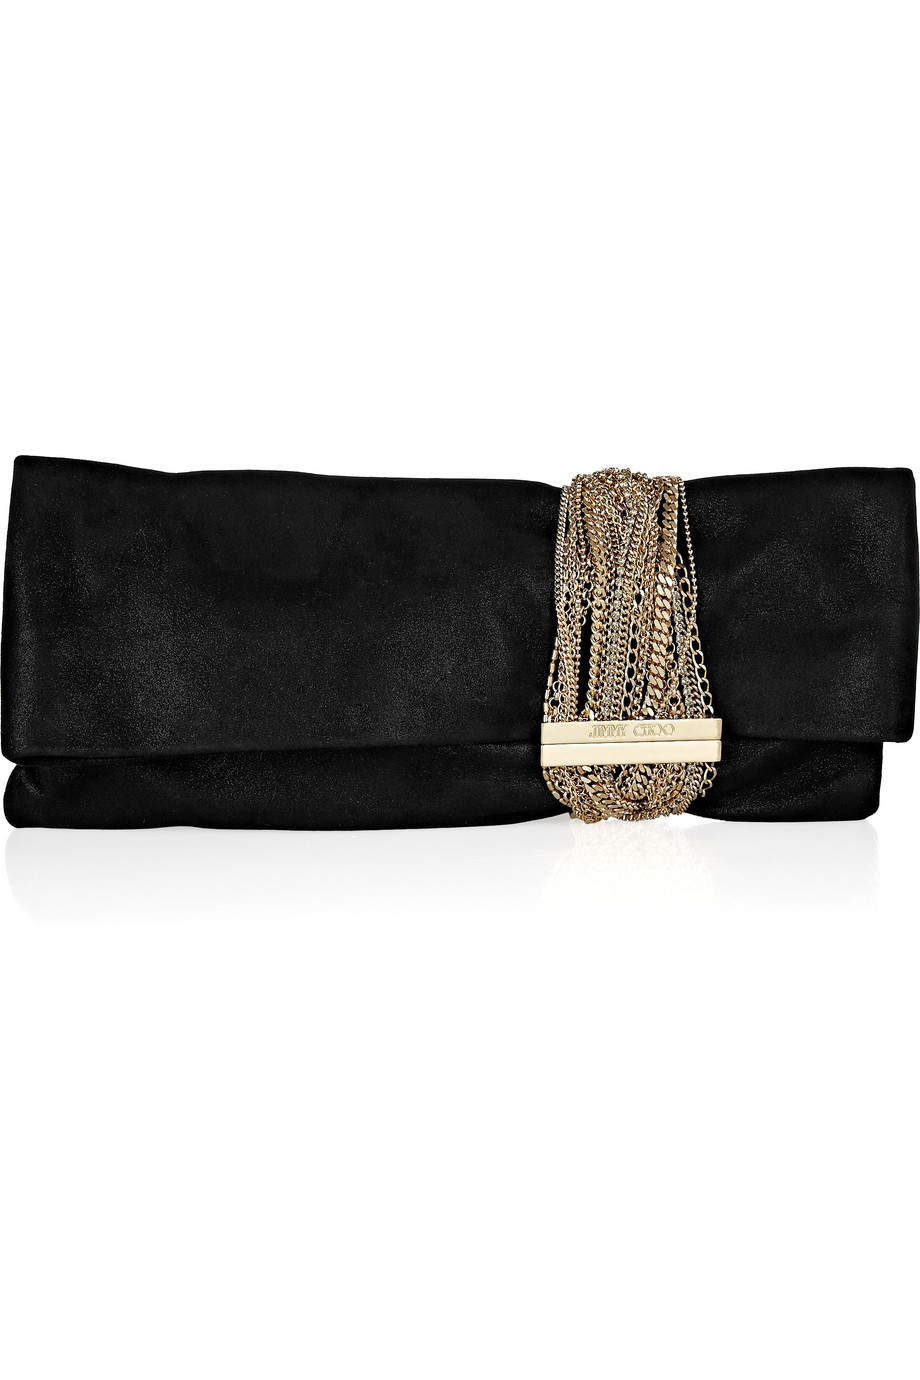 jimmy choo chandra chainembellished glittered suede clutch in black lyst. Black Bedroom Furniture Sets. Home Design Ideas